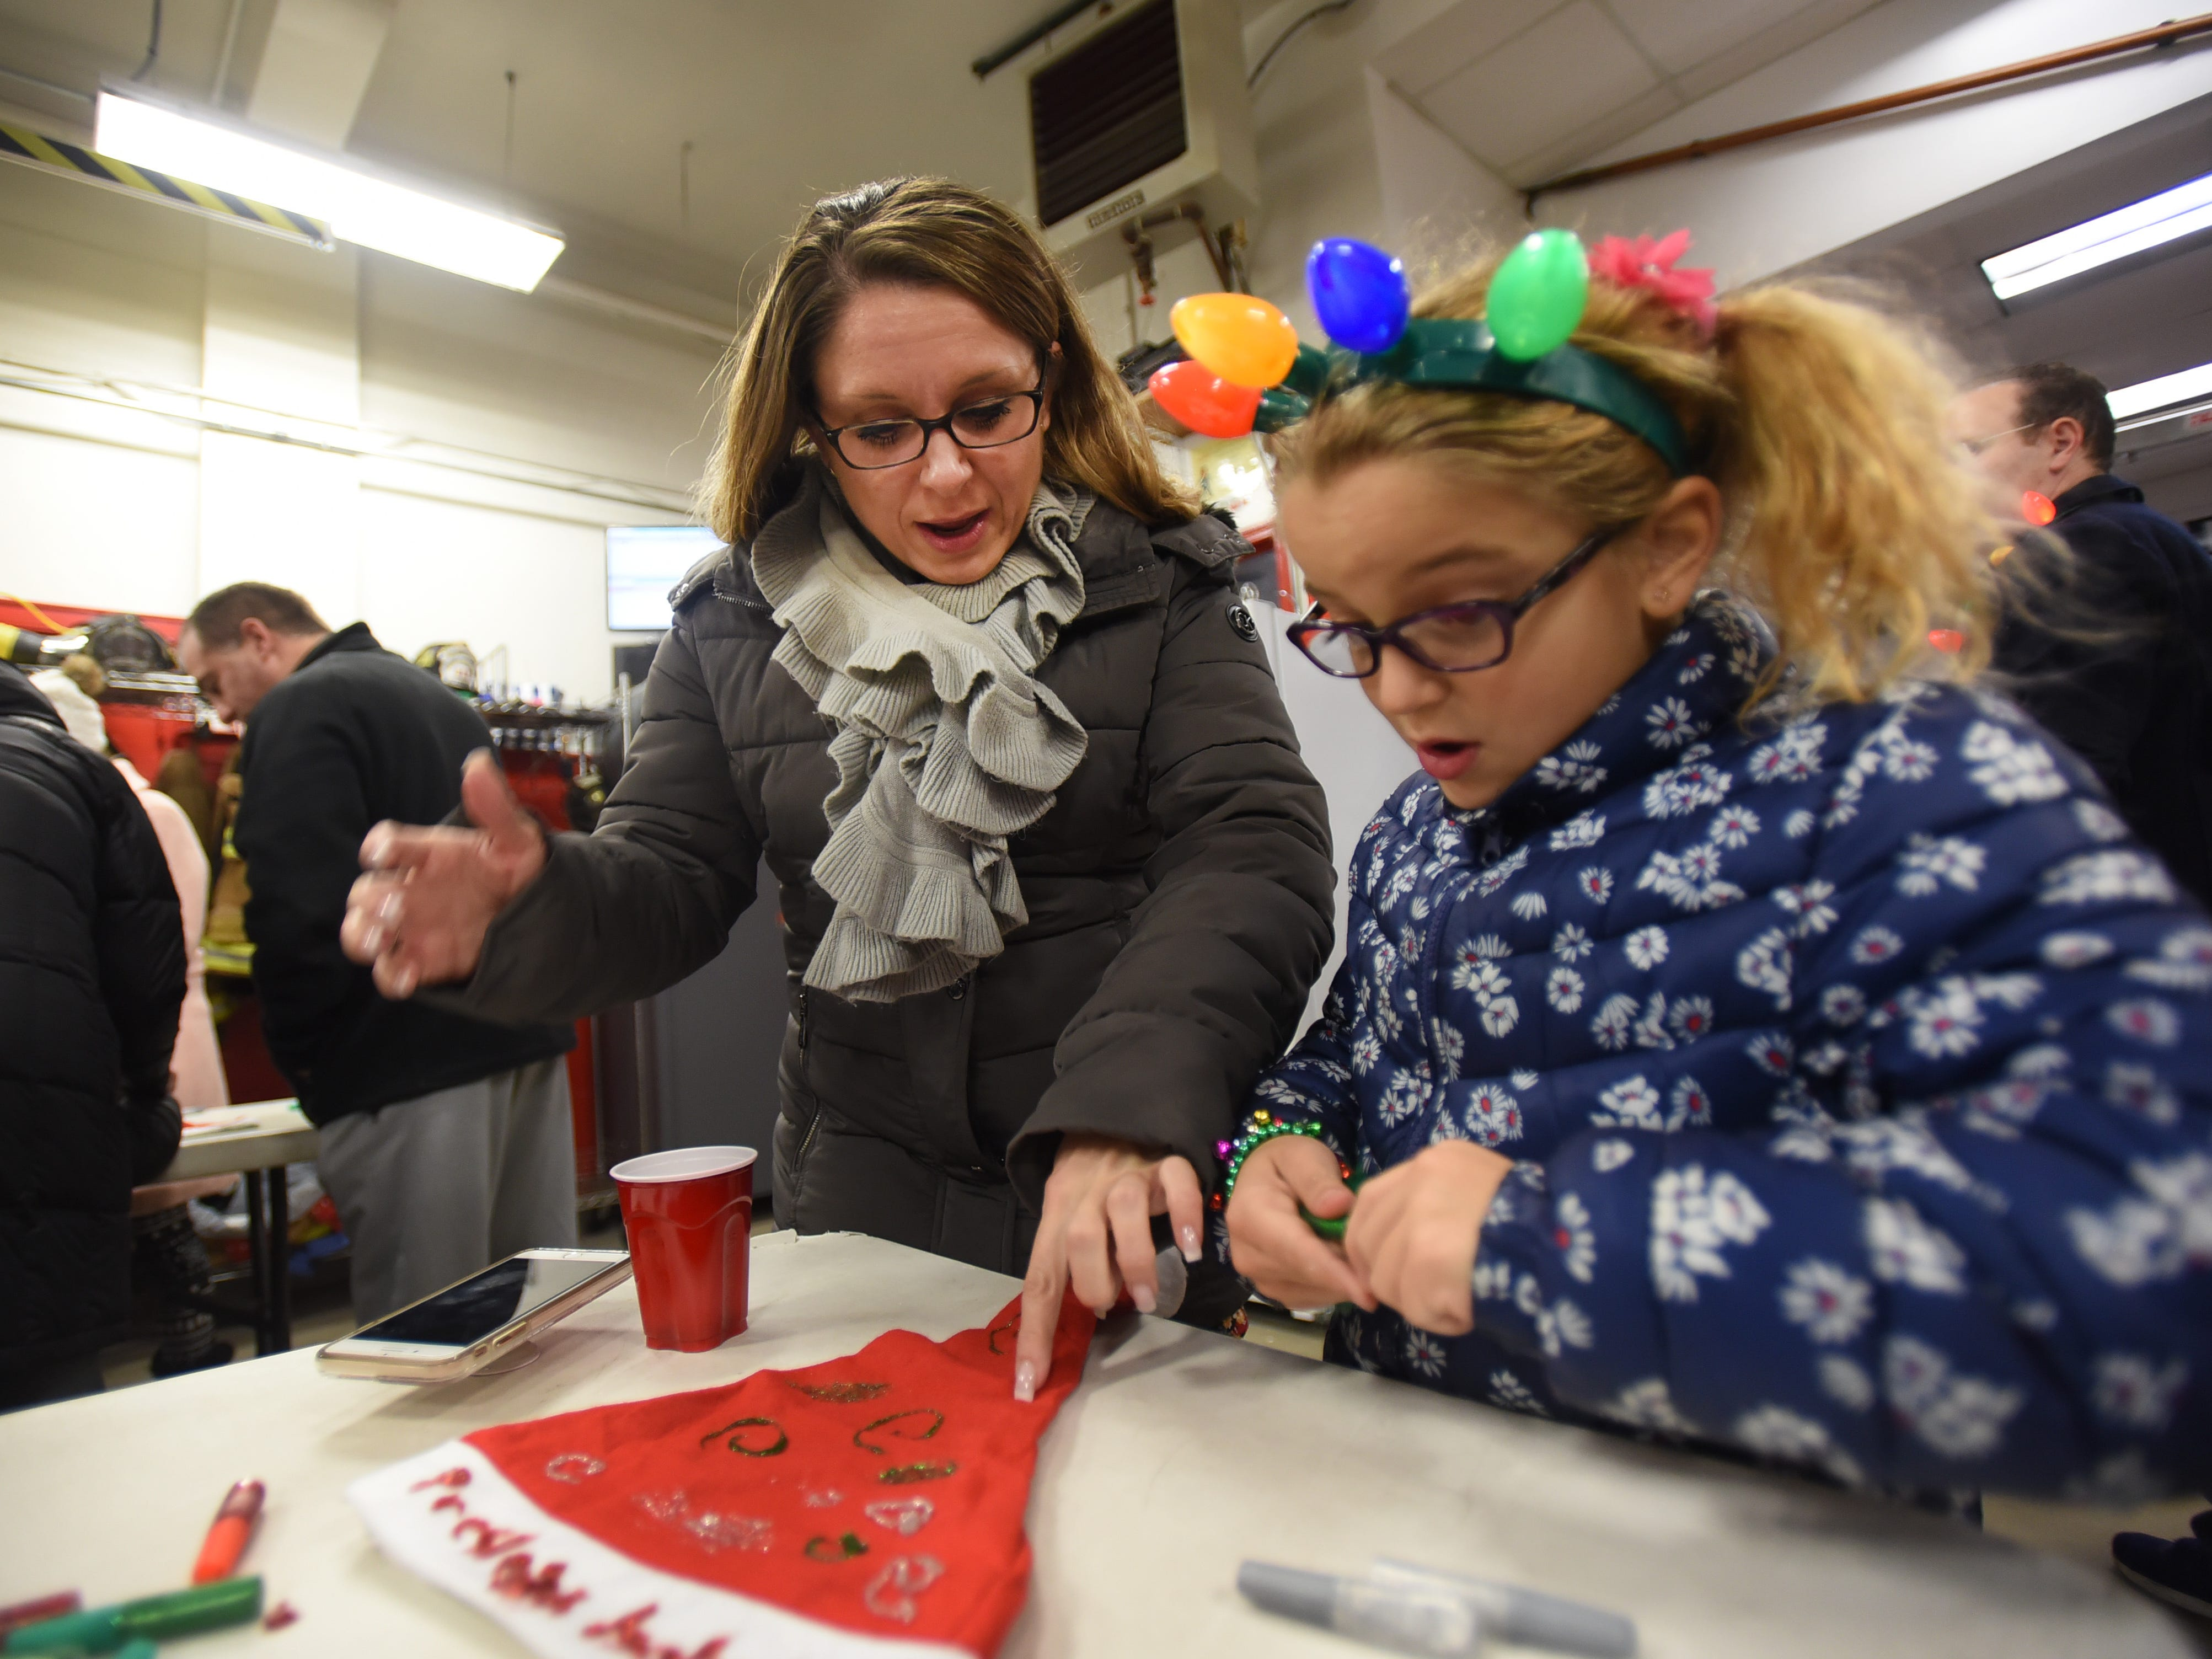 Presleigh Coronado (age 7) decorates her Christmas cap helped by her mother Alicia prior to the Christmas Tree Lighting ceremony at Cedar Grove Town Hall on 12/03/18.